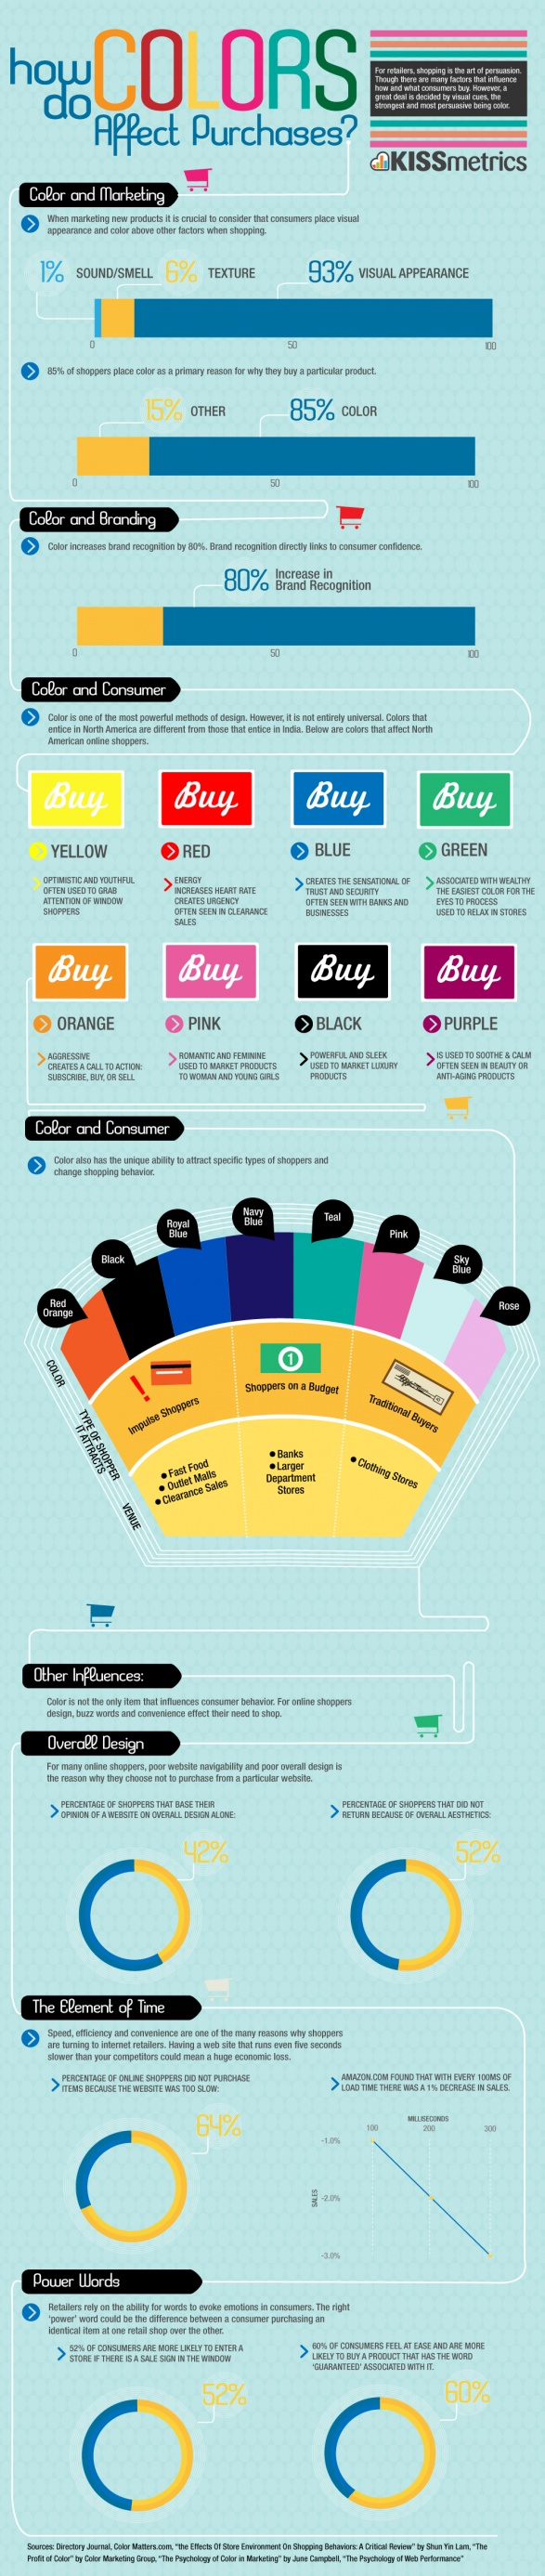 22 best Editing / Study images on Pinterest | Graph design, Charts ...